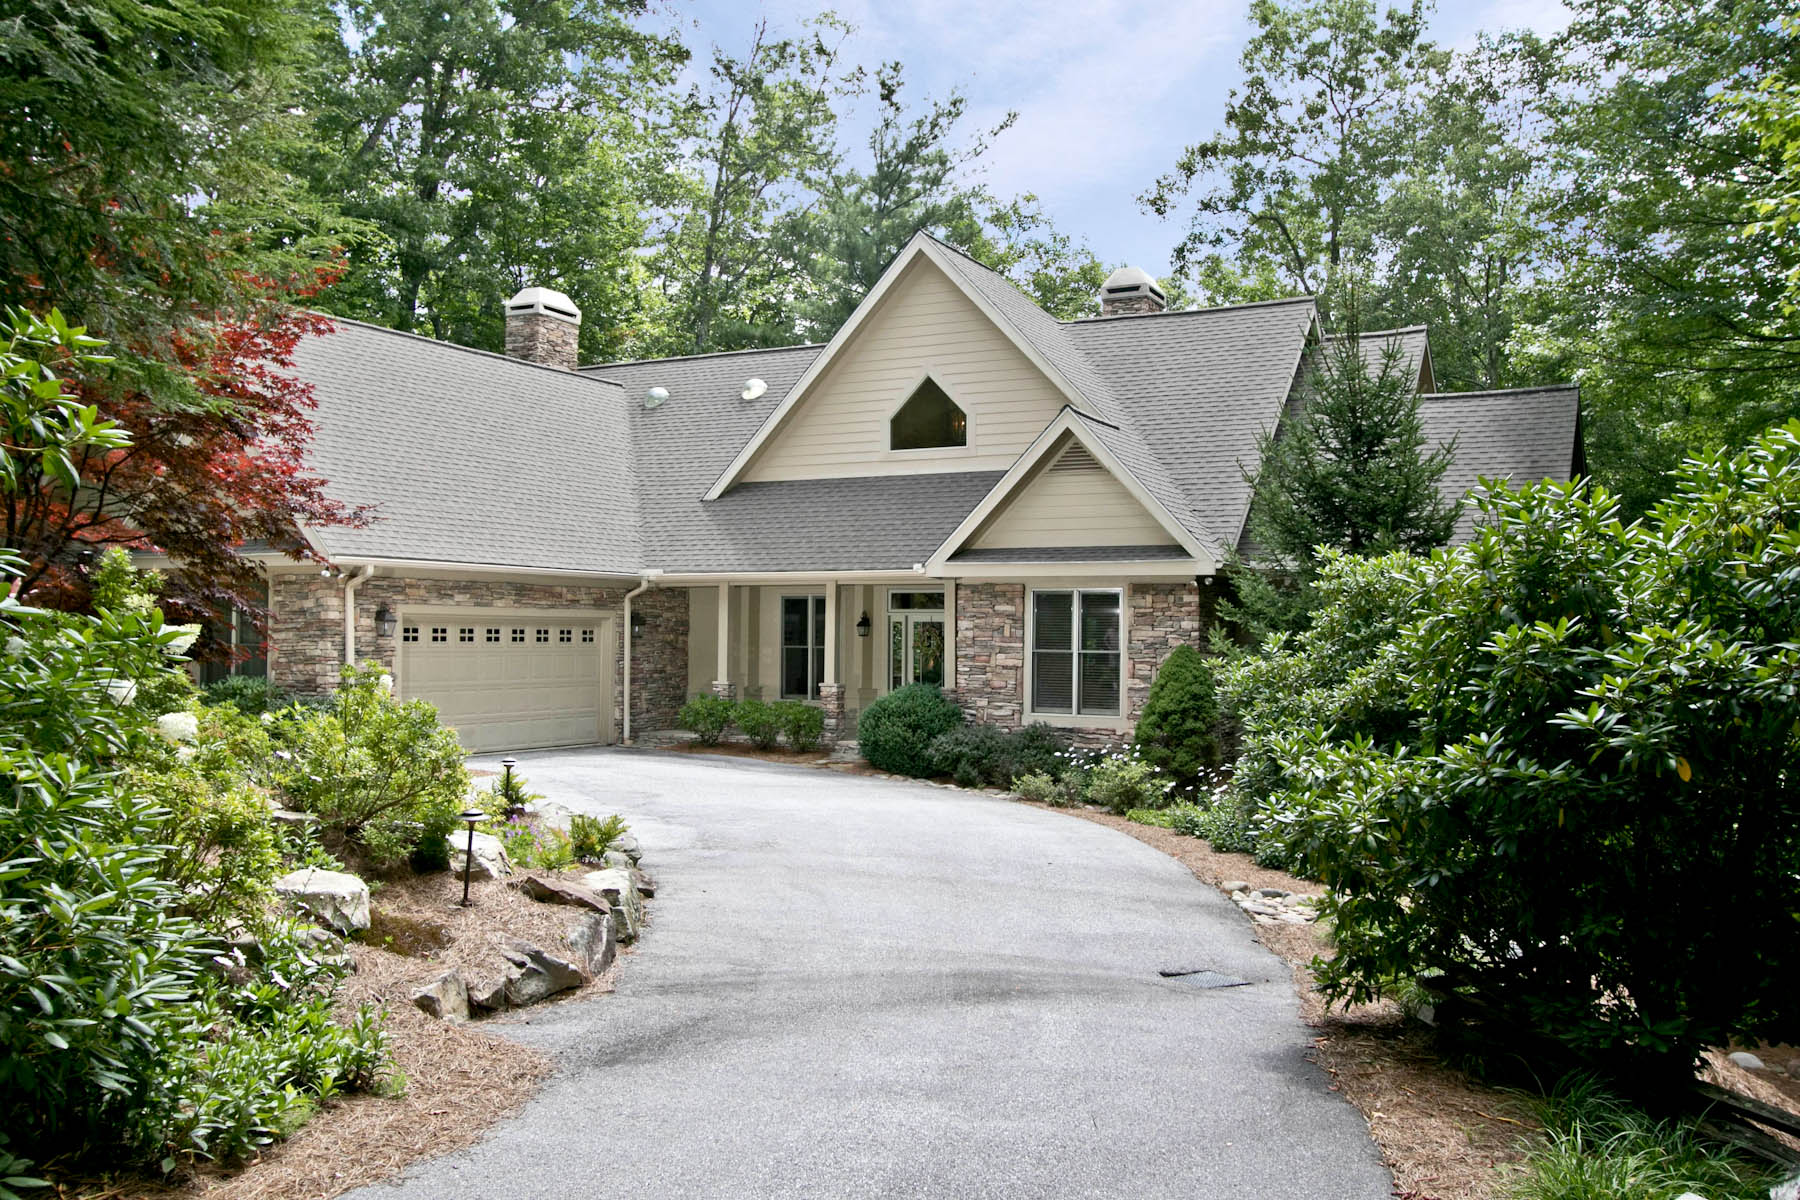 Single Family Home for Sale at 723 Lost Trail Highlands, North Carolina, 28741 United States